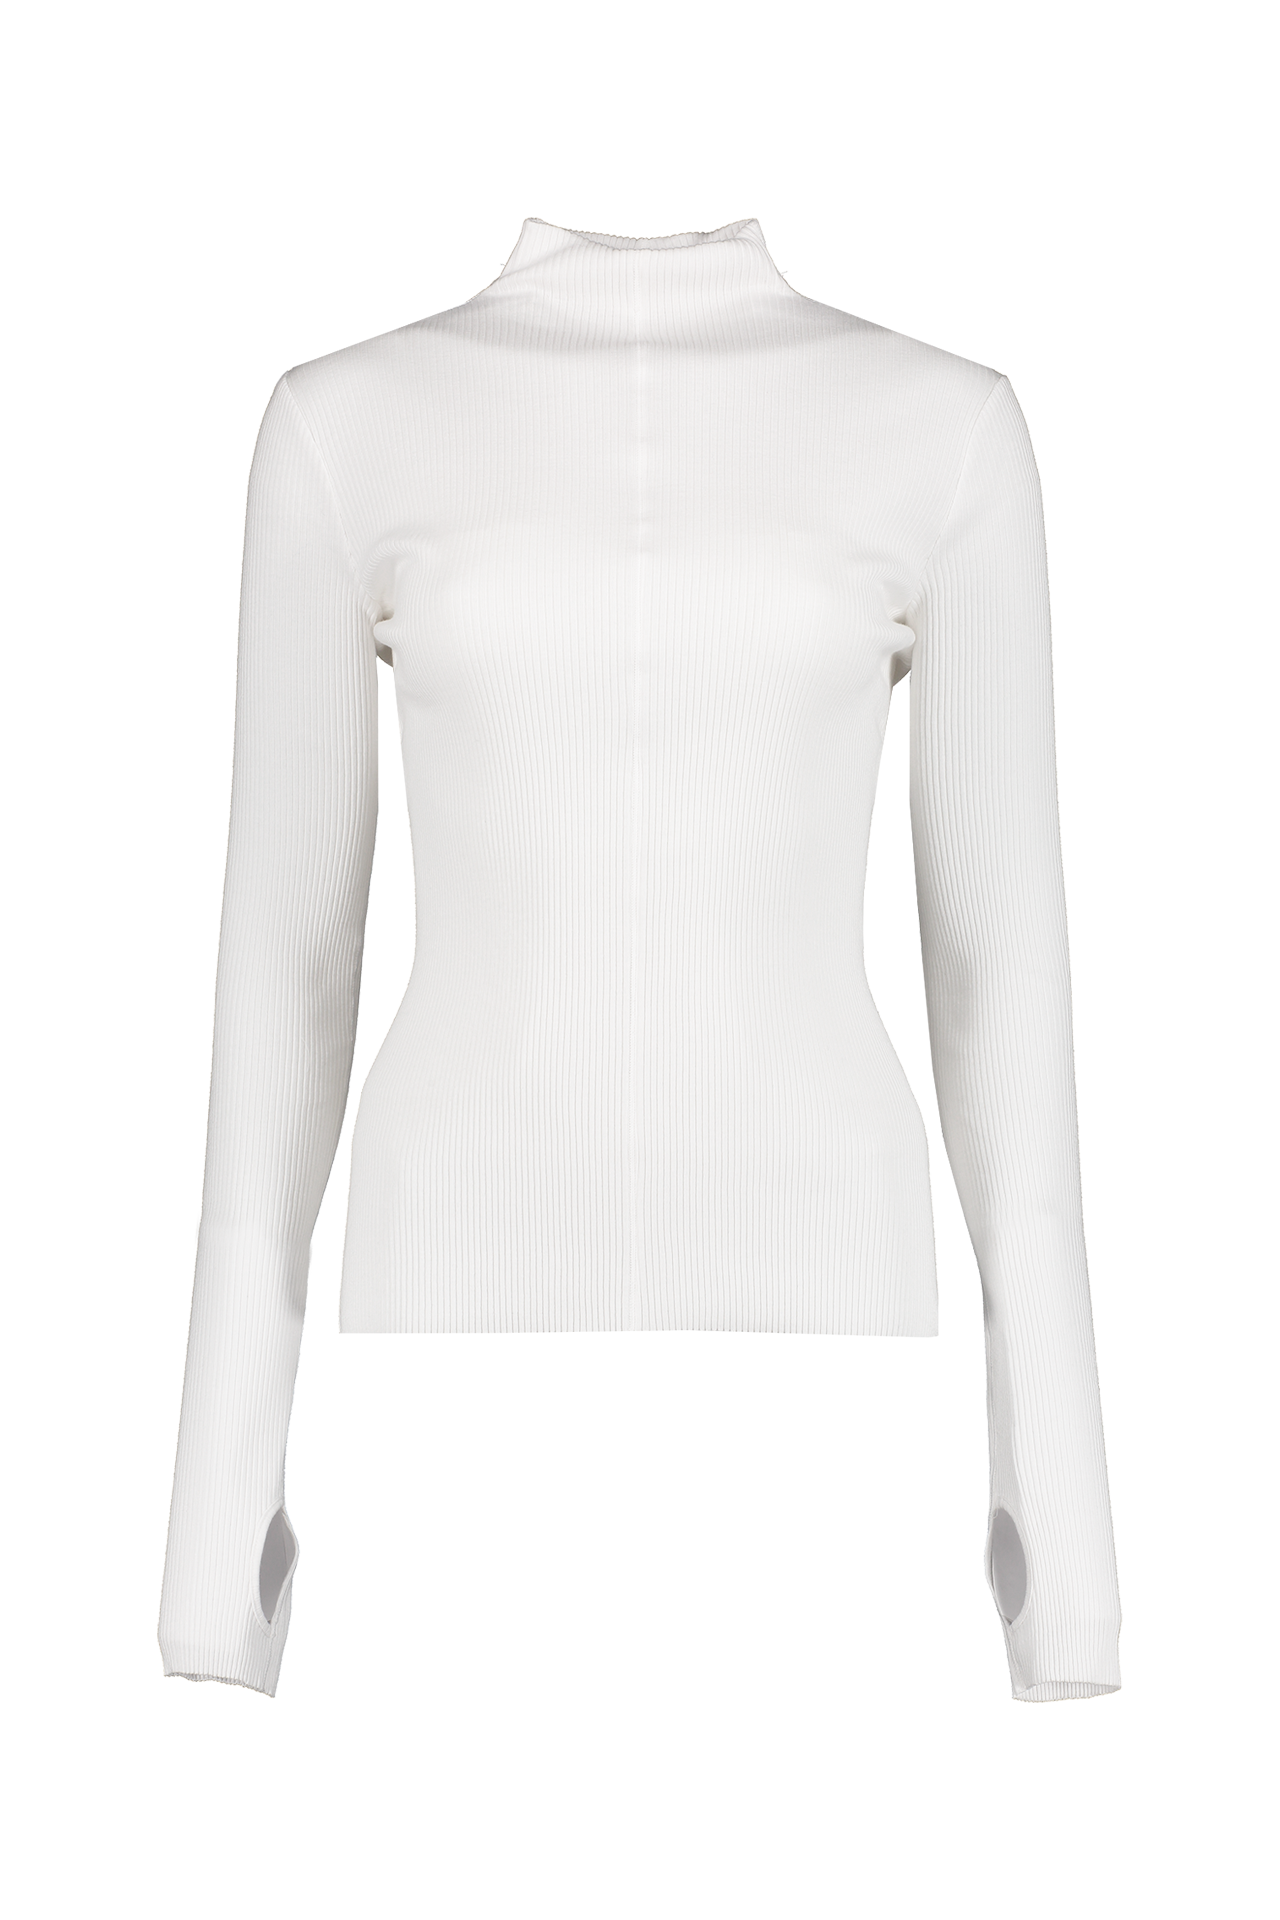 Front detail image of Helmut Lang High Neck Rib Top White